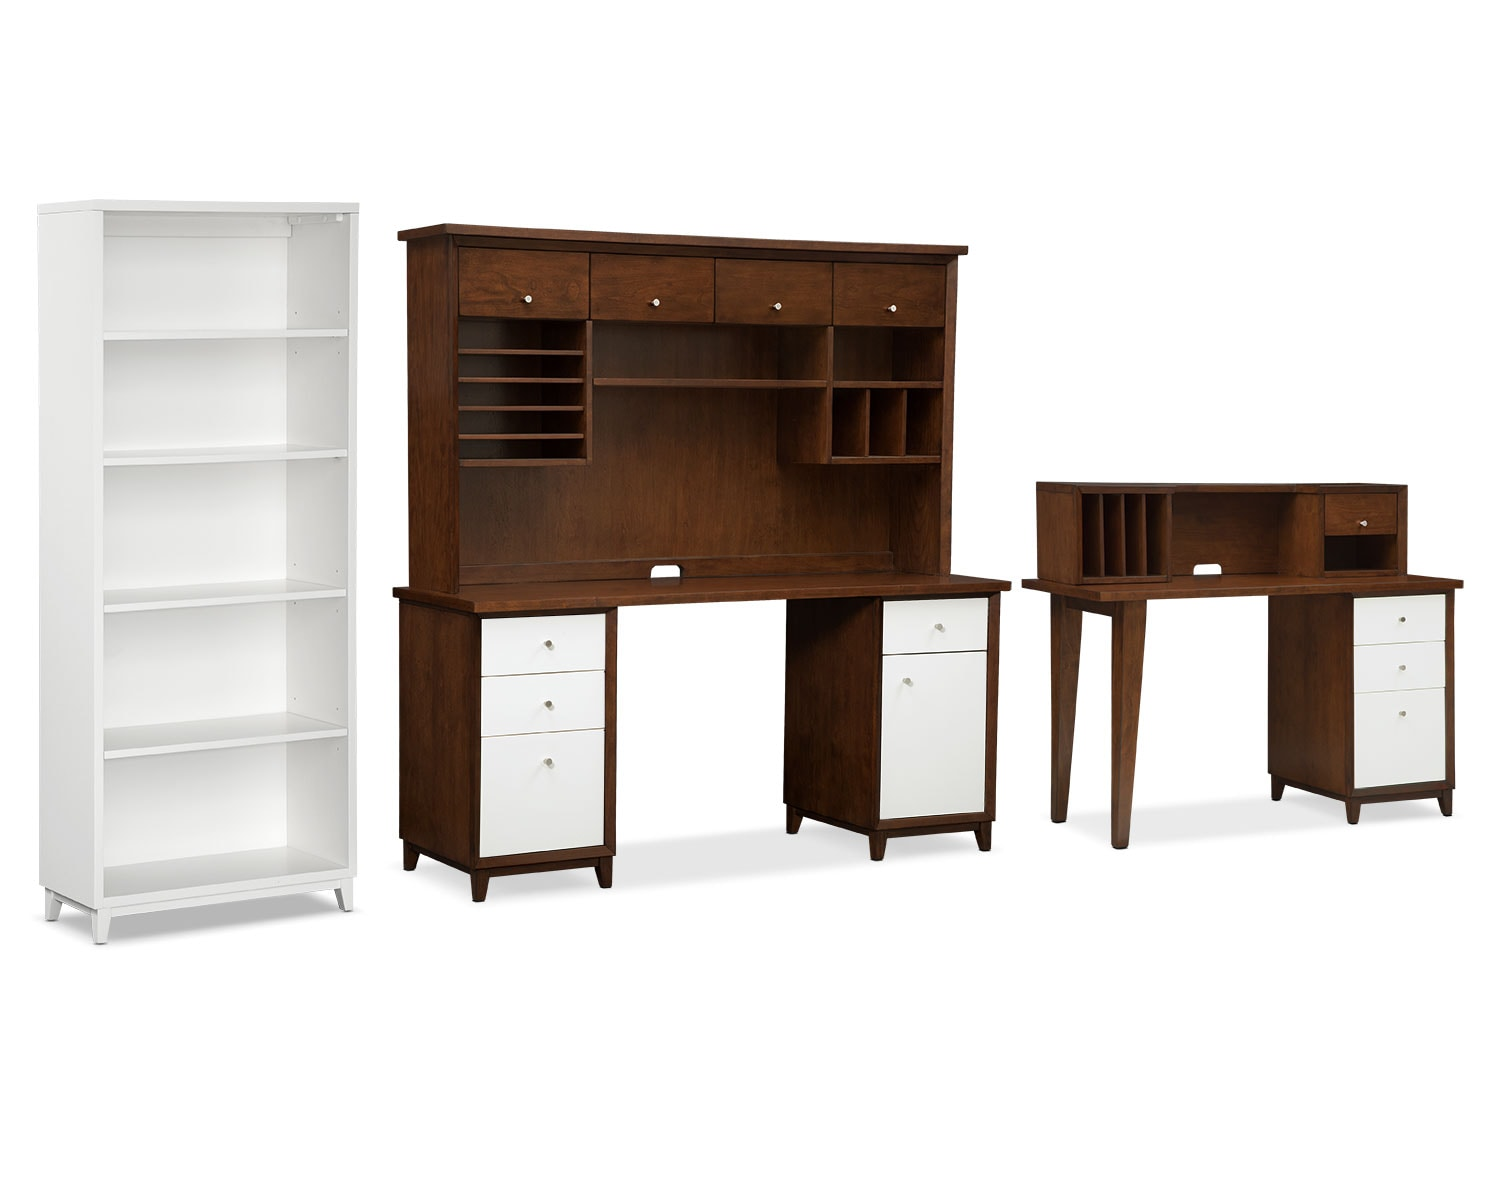 The Oslo White Home Office Collection